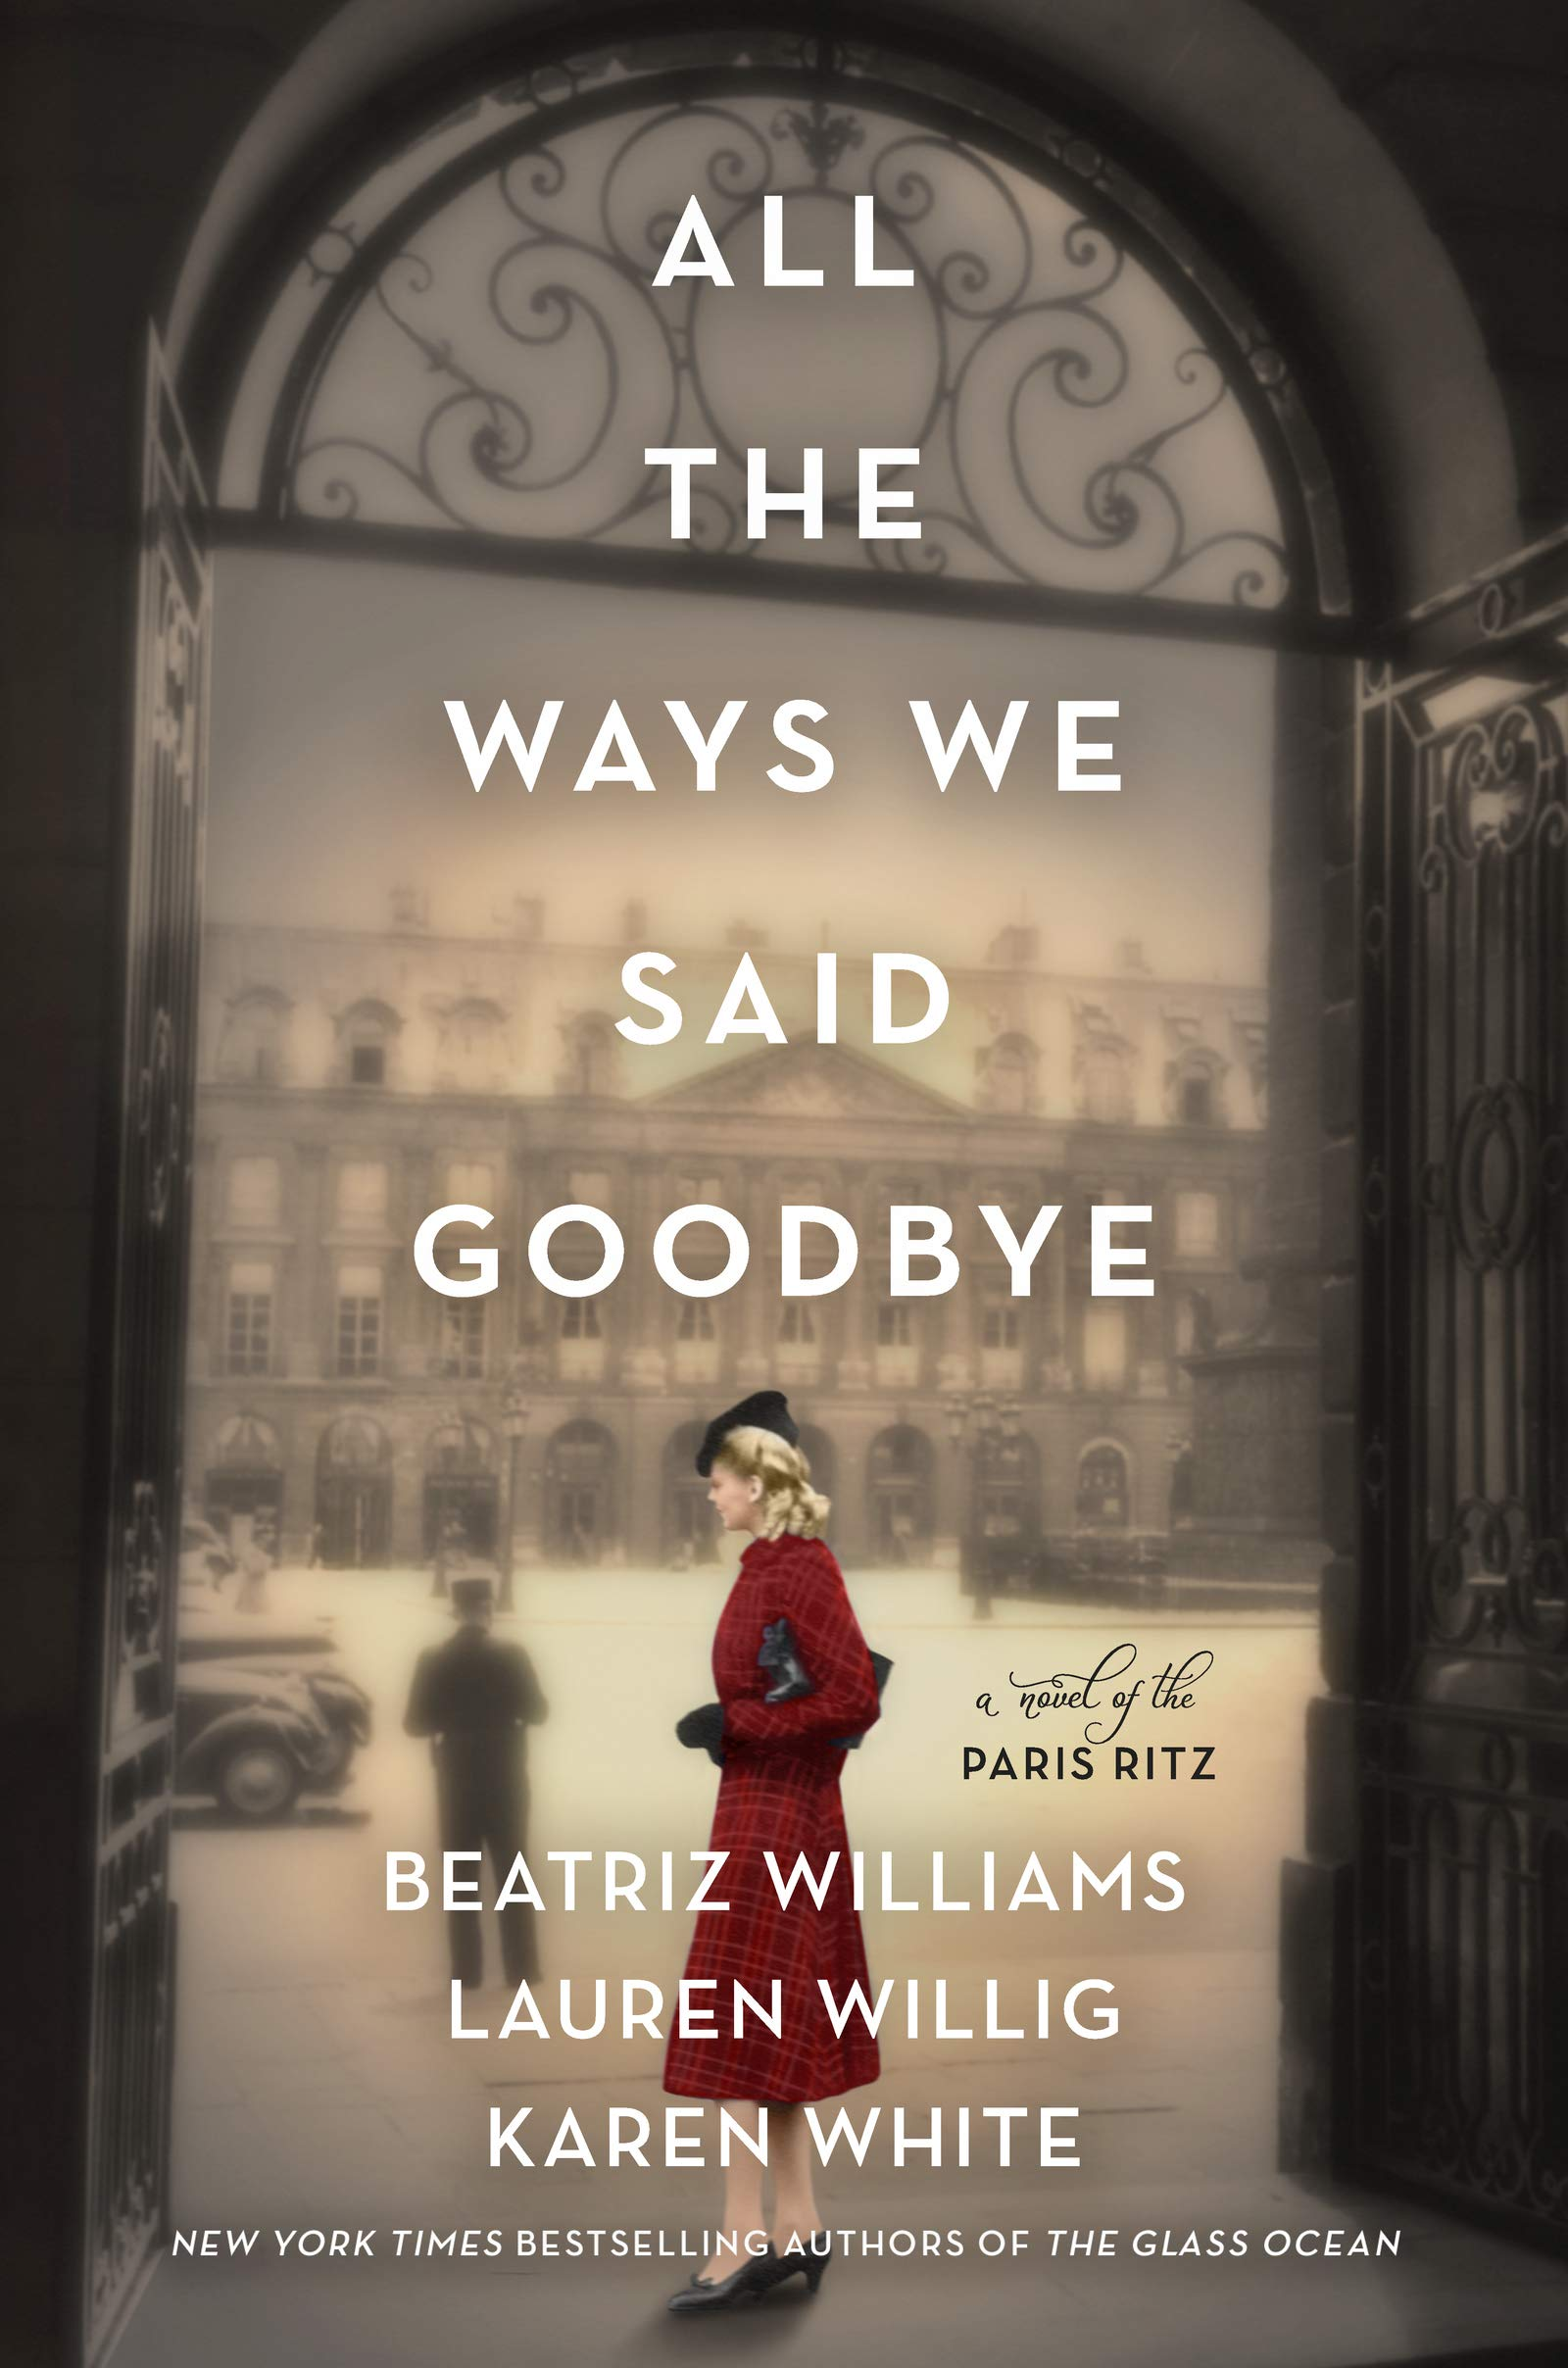 All The Ways We Said Goodbye by Beatriz Williams Lauren Willig Karen White 2020